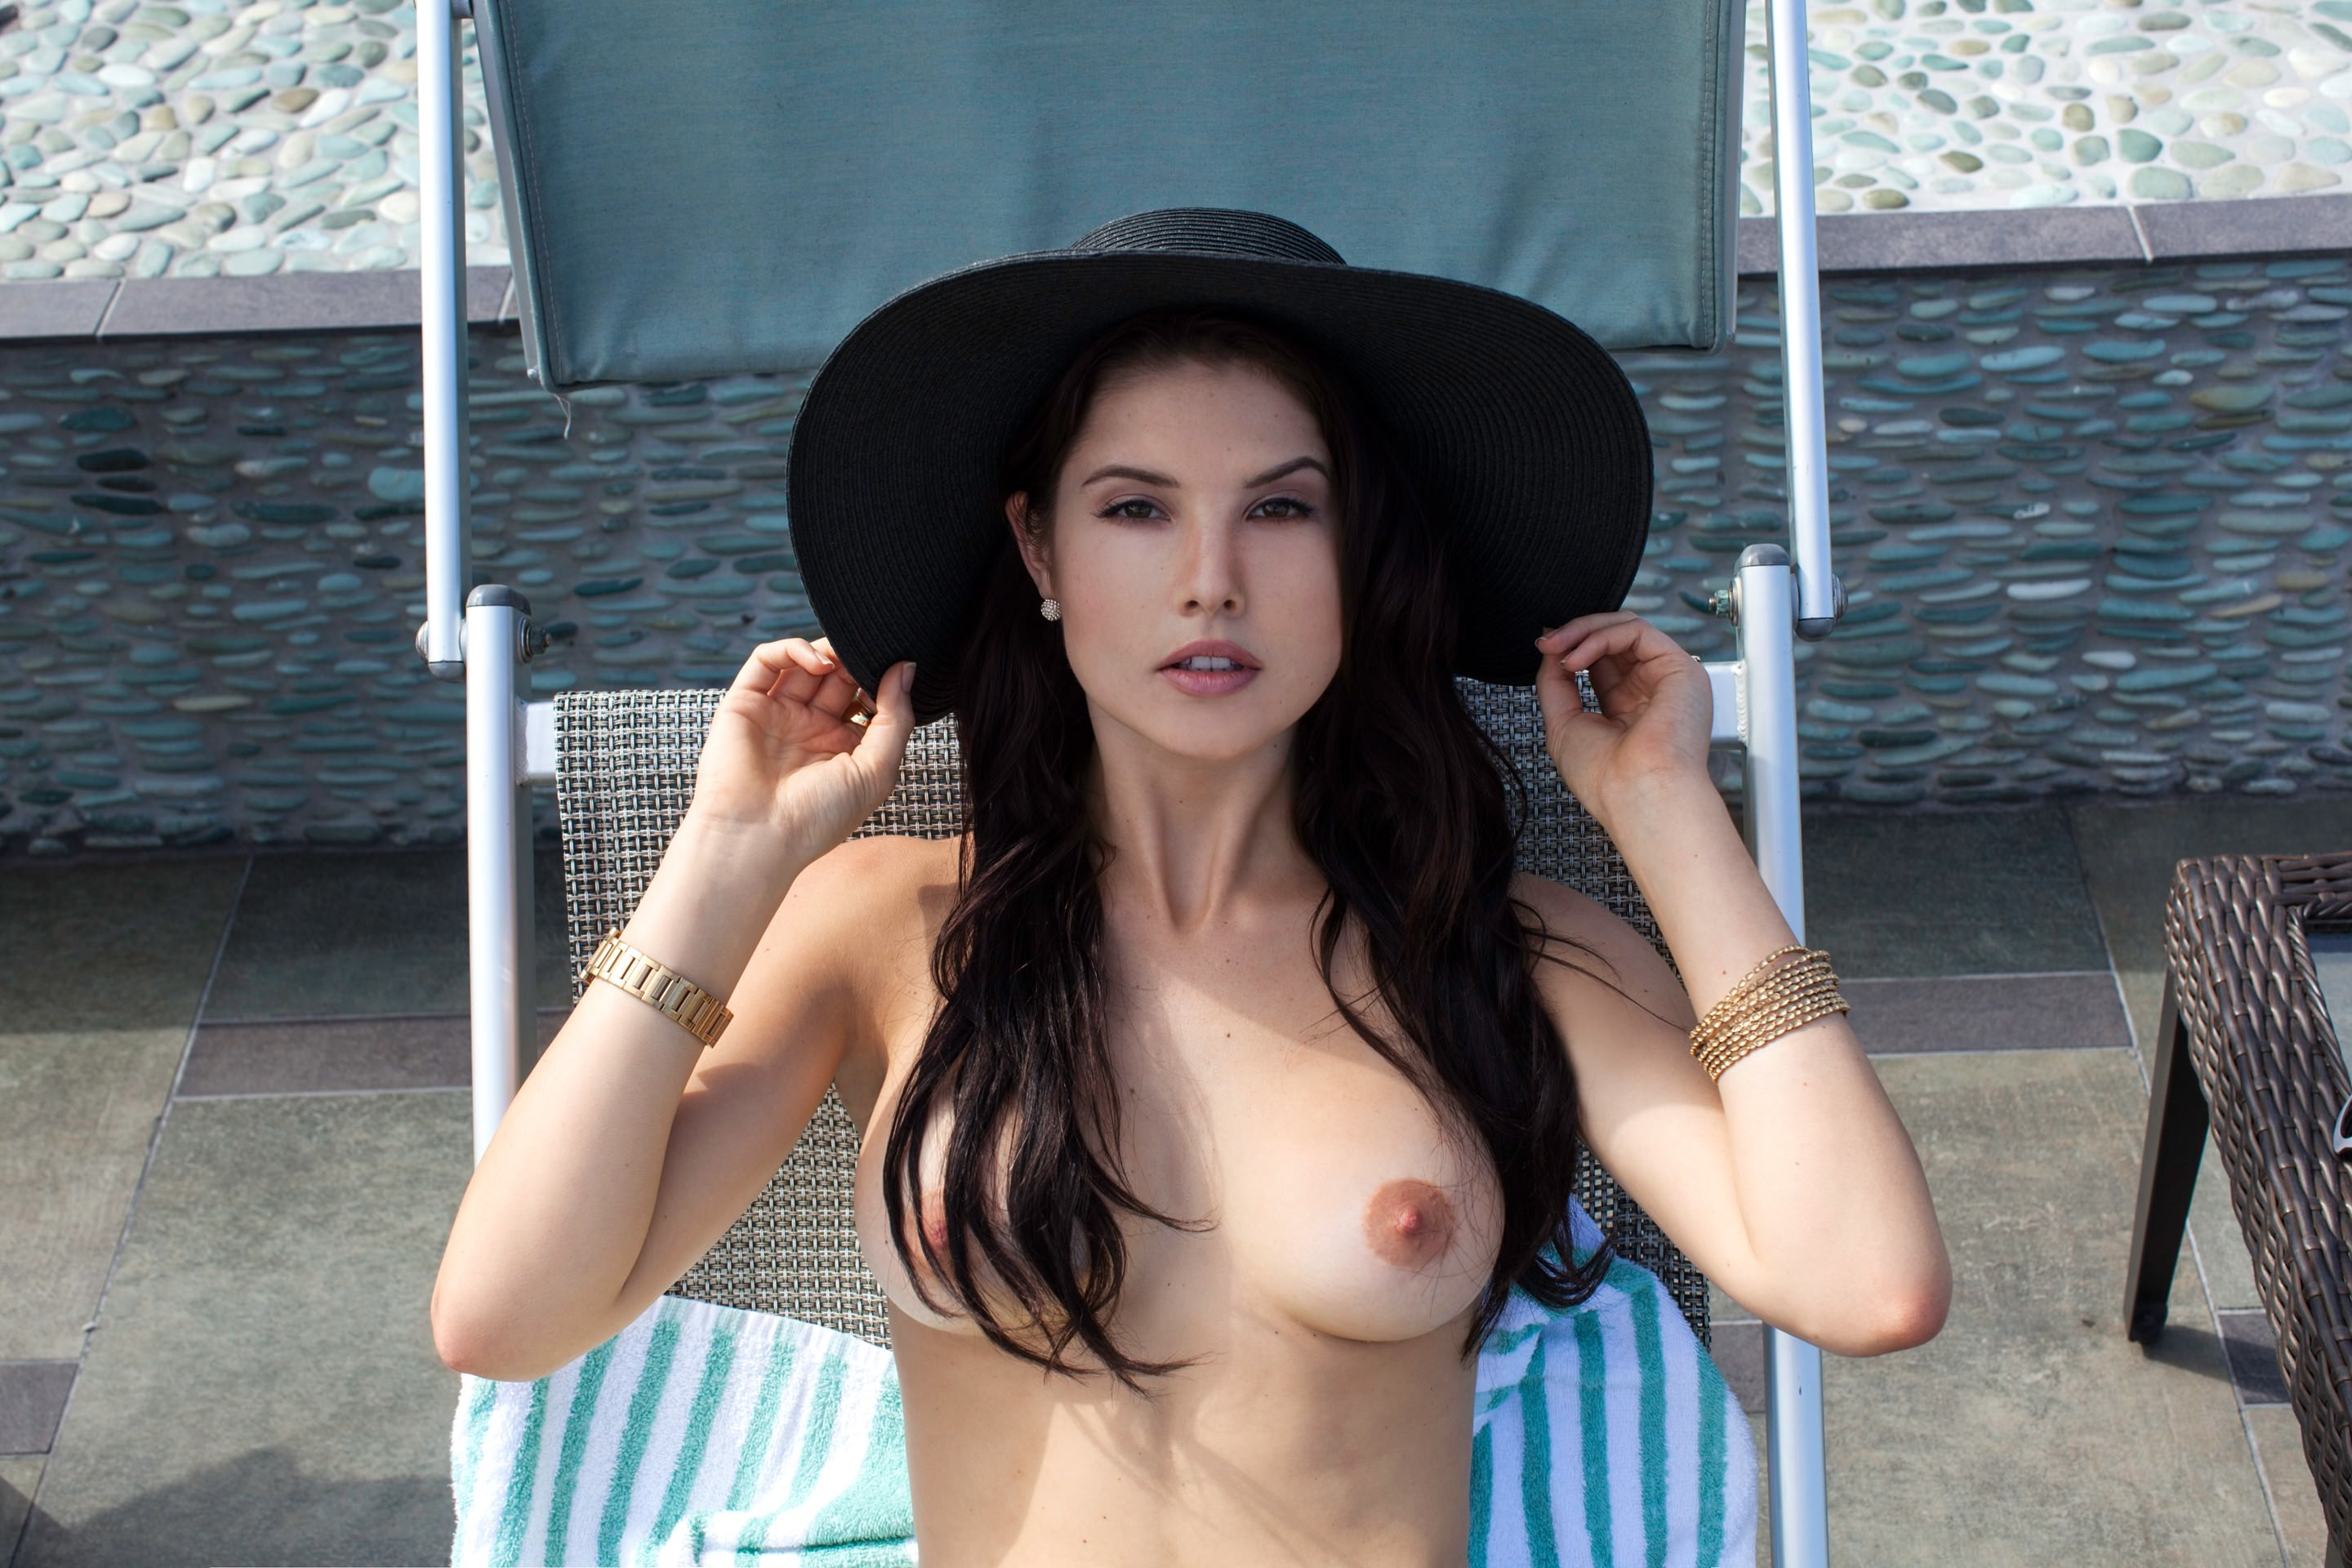 FULL VIDEO: Amanda Cerny Nude & Sex Tape Onlyfans Leaked!